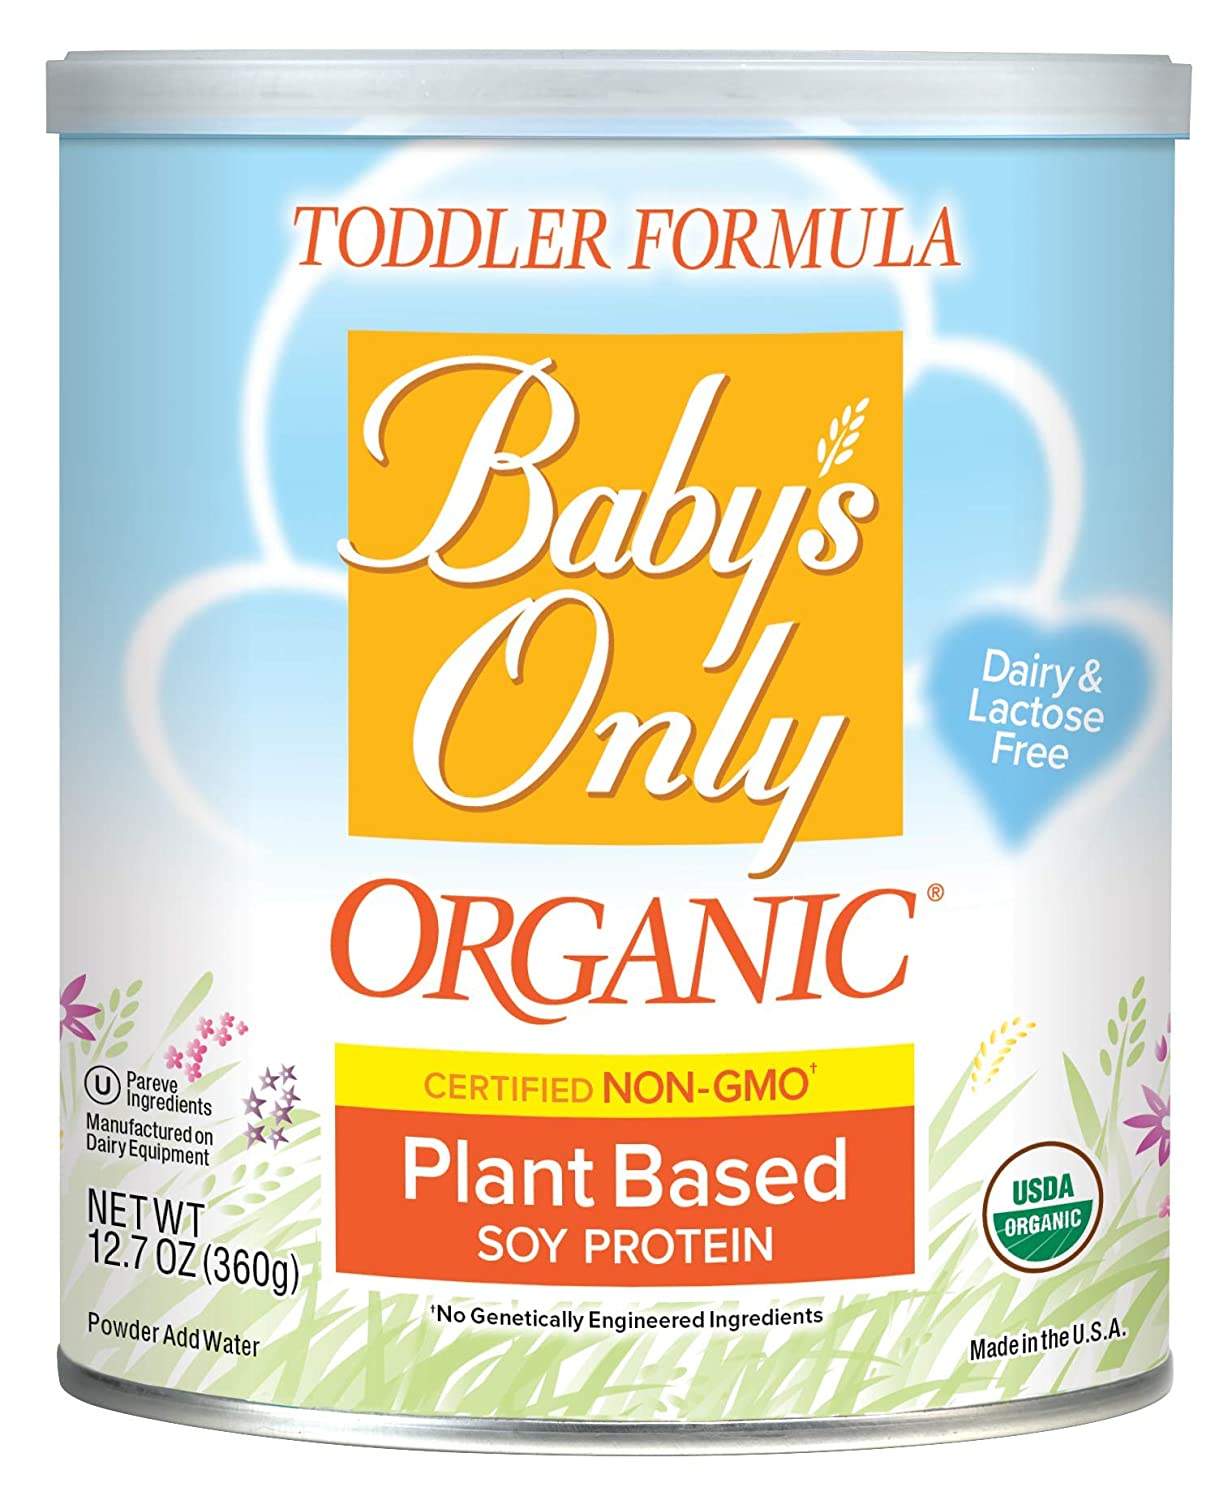 Baby's Only Soy Protein Toddler Formula - Non GMO, USDA Organic, Clean Label Project Verified